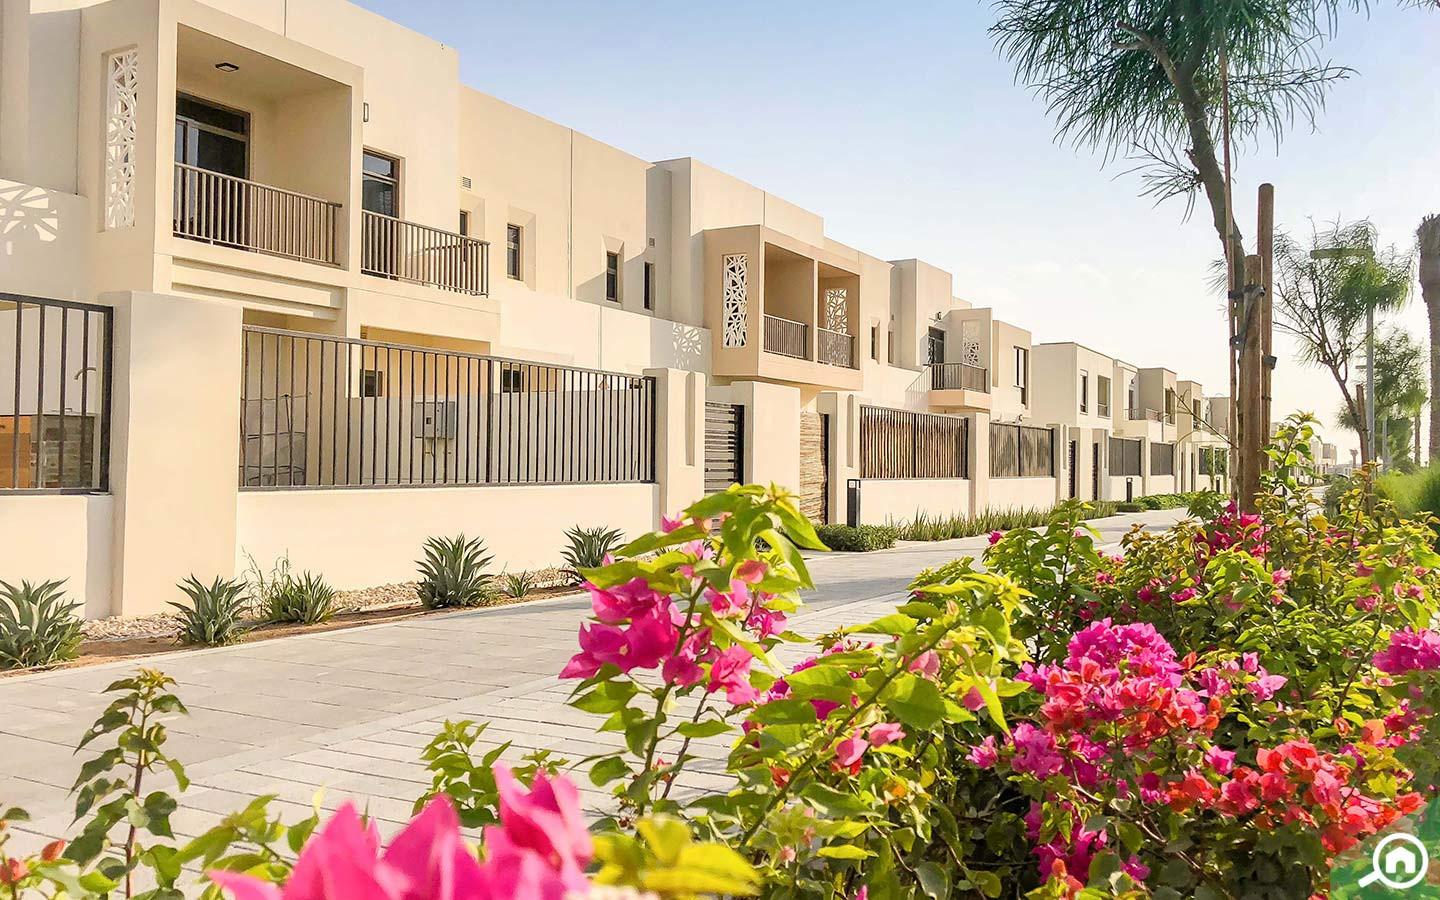 View of the Nshama Safi Townhouses for sale with landscaping